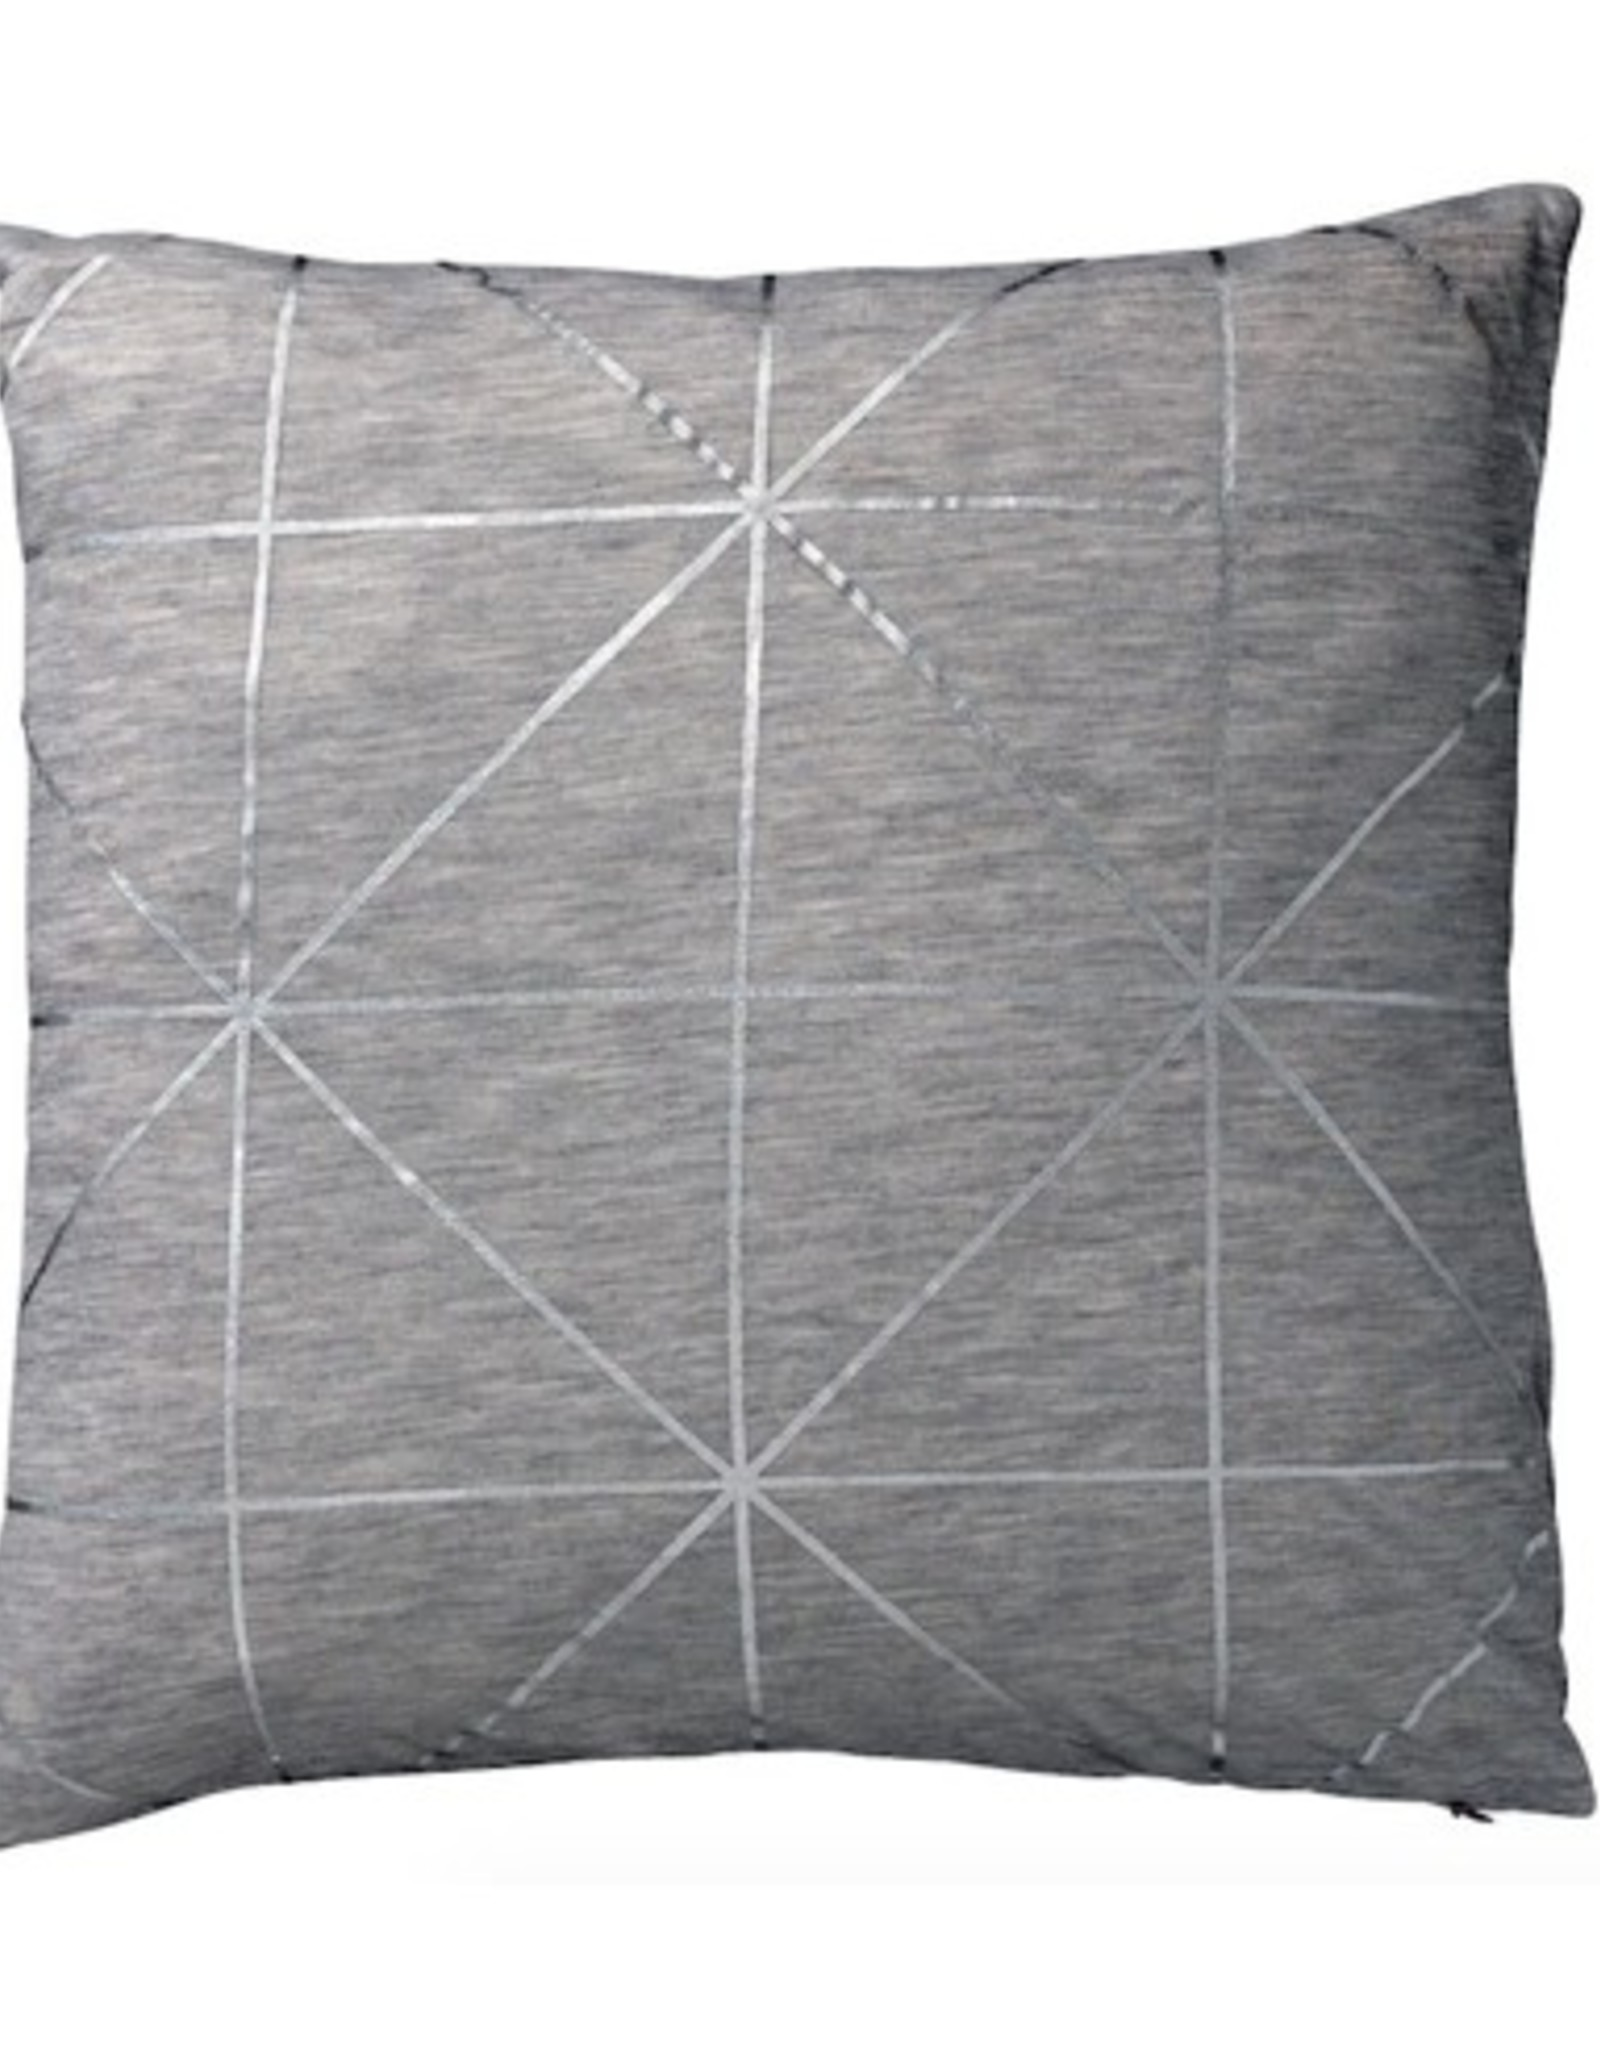 Light Grey Melange Pillow with Silver Diagonal Print